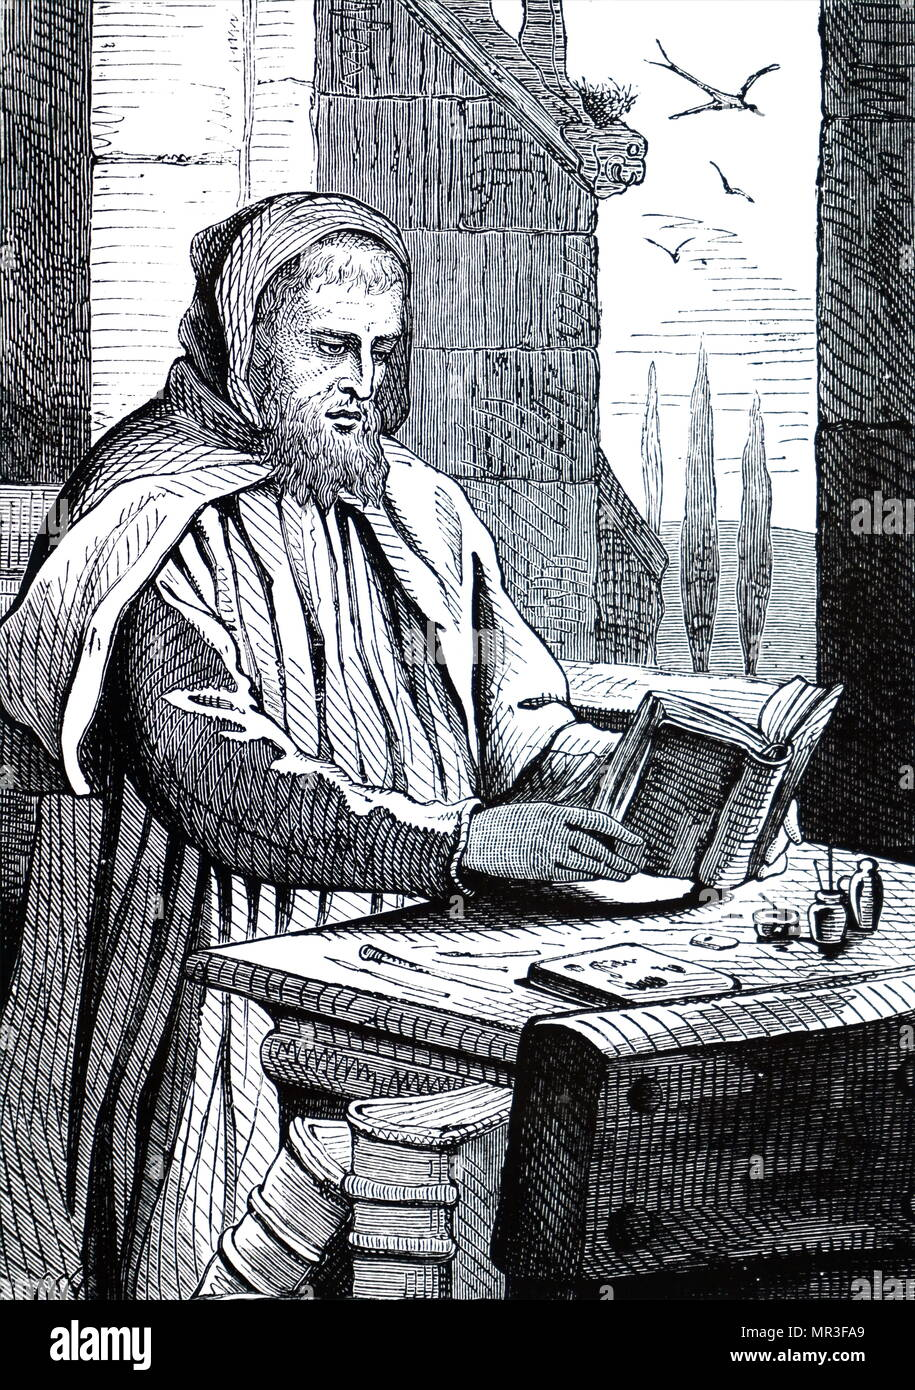 Engraving depicting a monk illuminating a manuscript. Dated 19th century - Stock Image